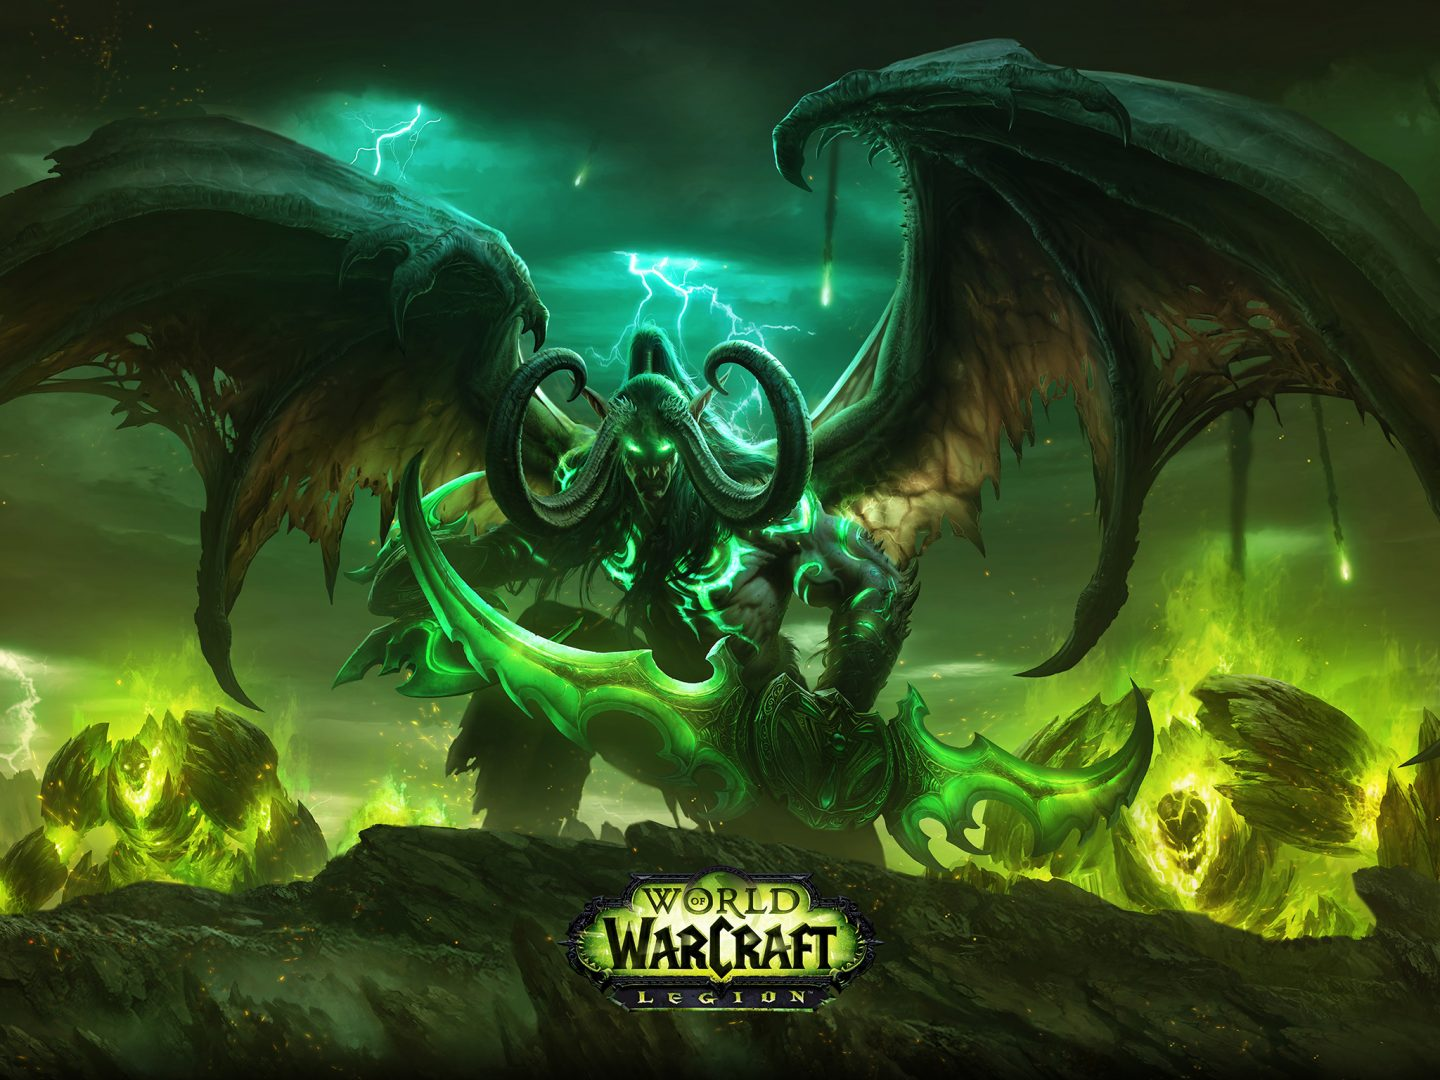 New Expansion Pack Announced for World of Warcraft